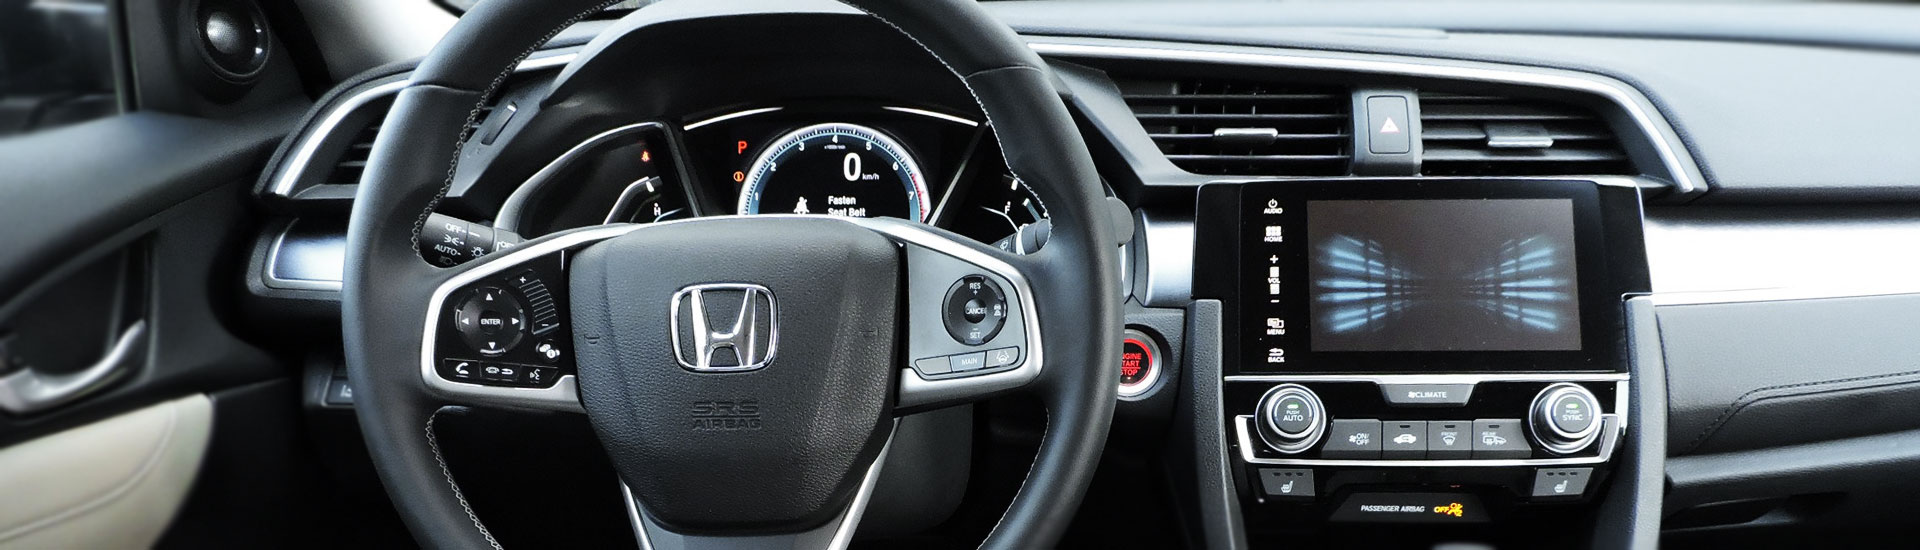 2018 Honda HR-V Custom Dash Kits